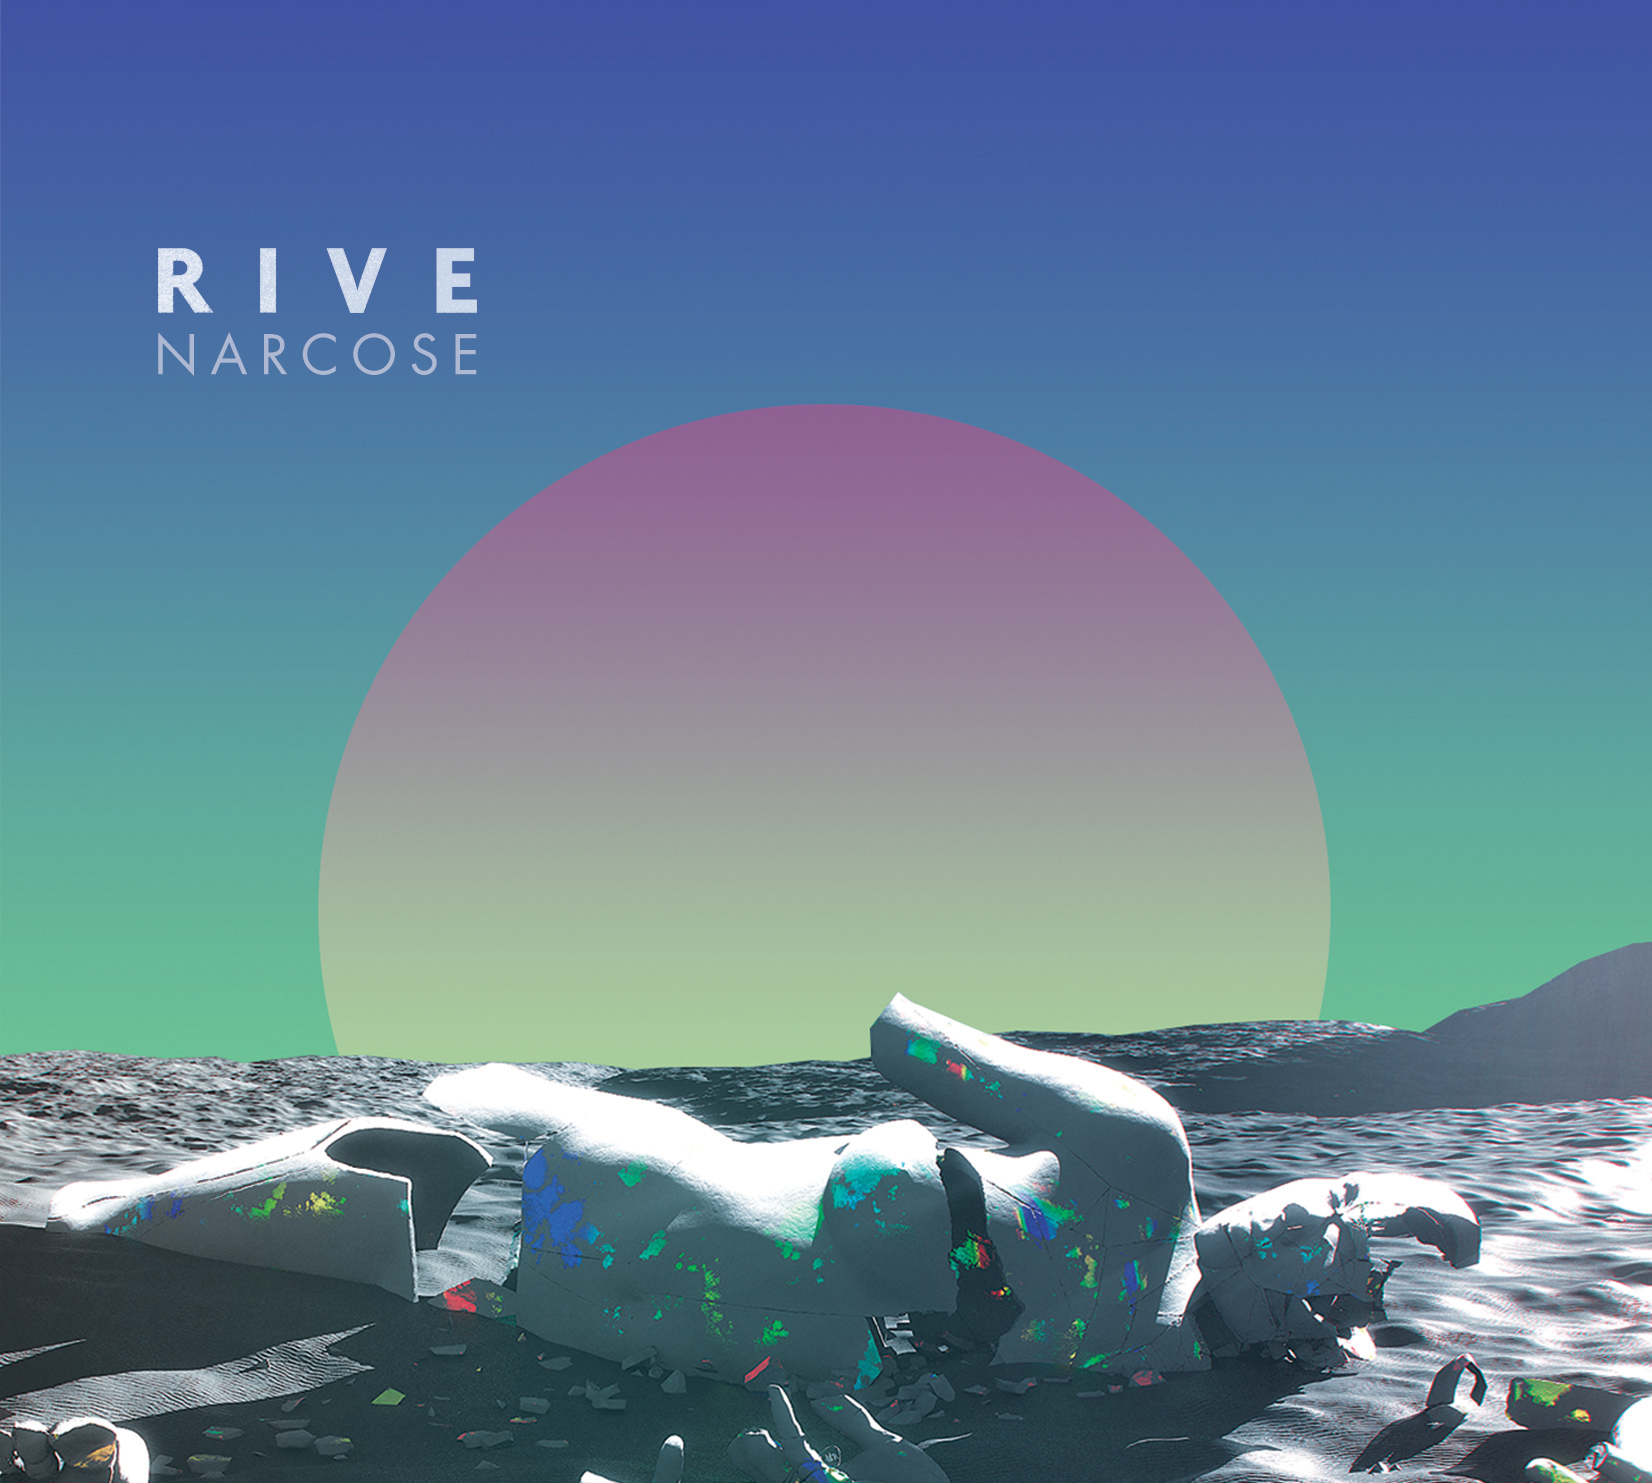 Rive narcose album artwork